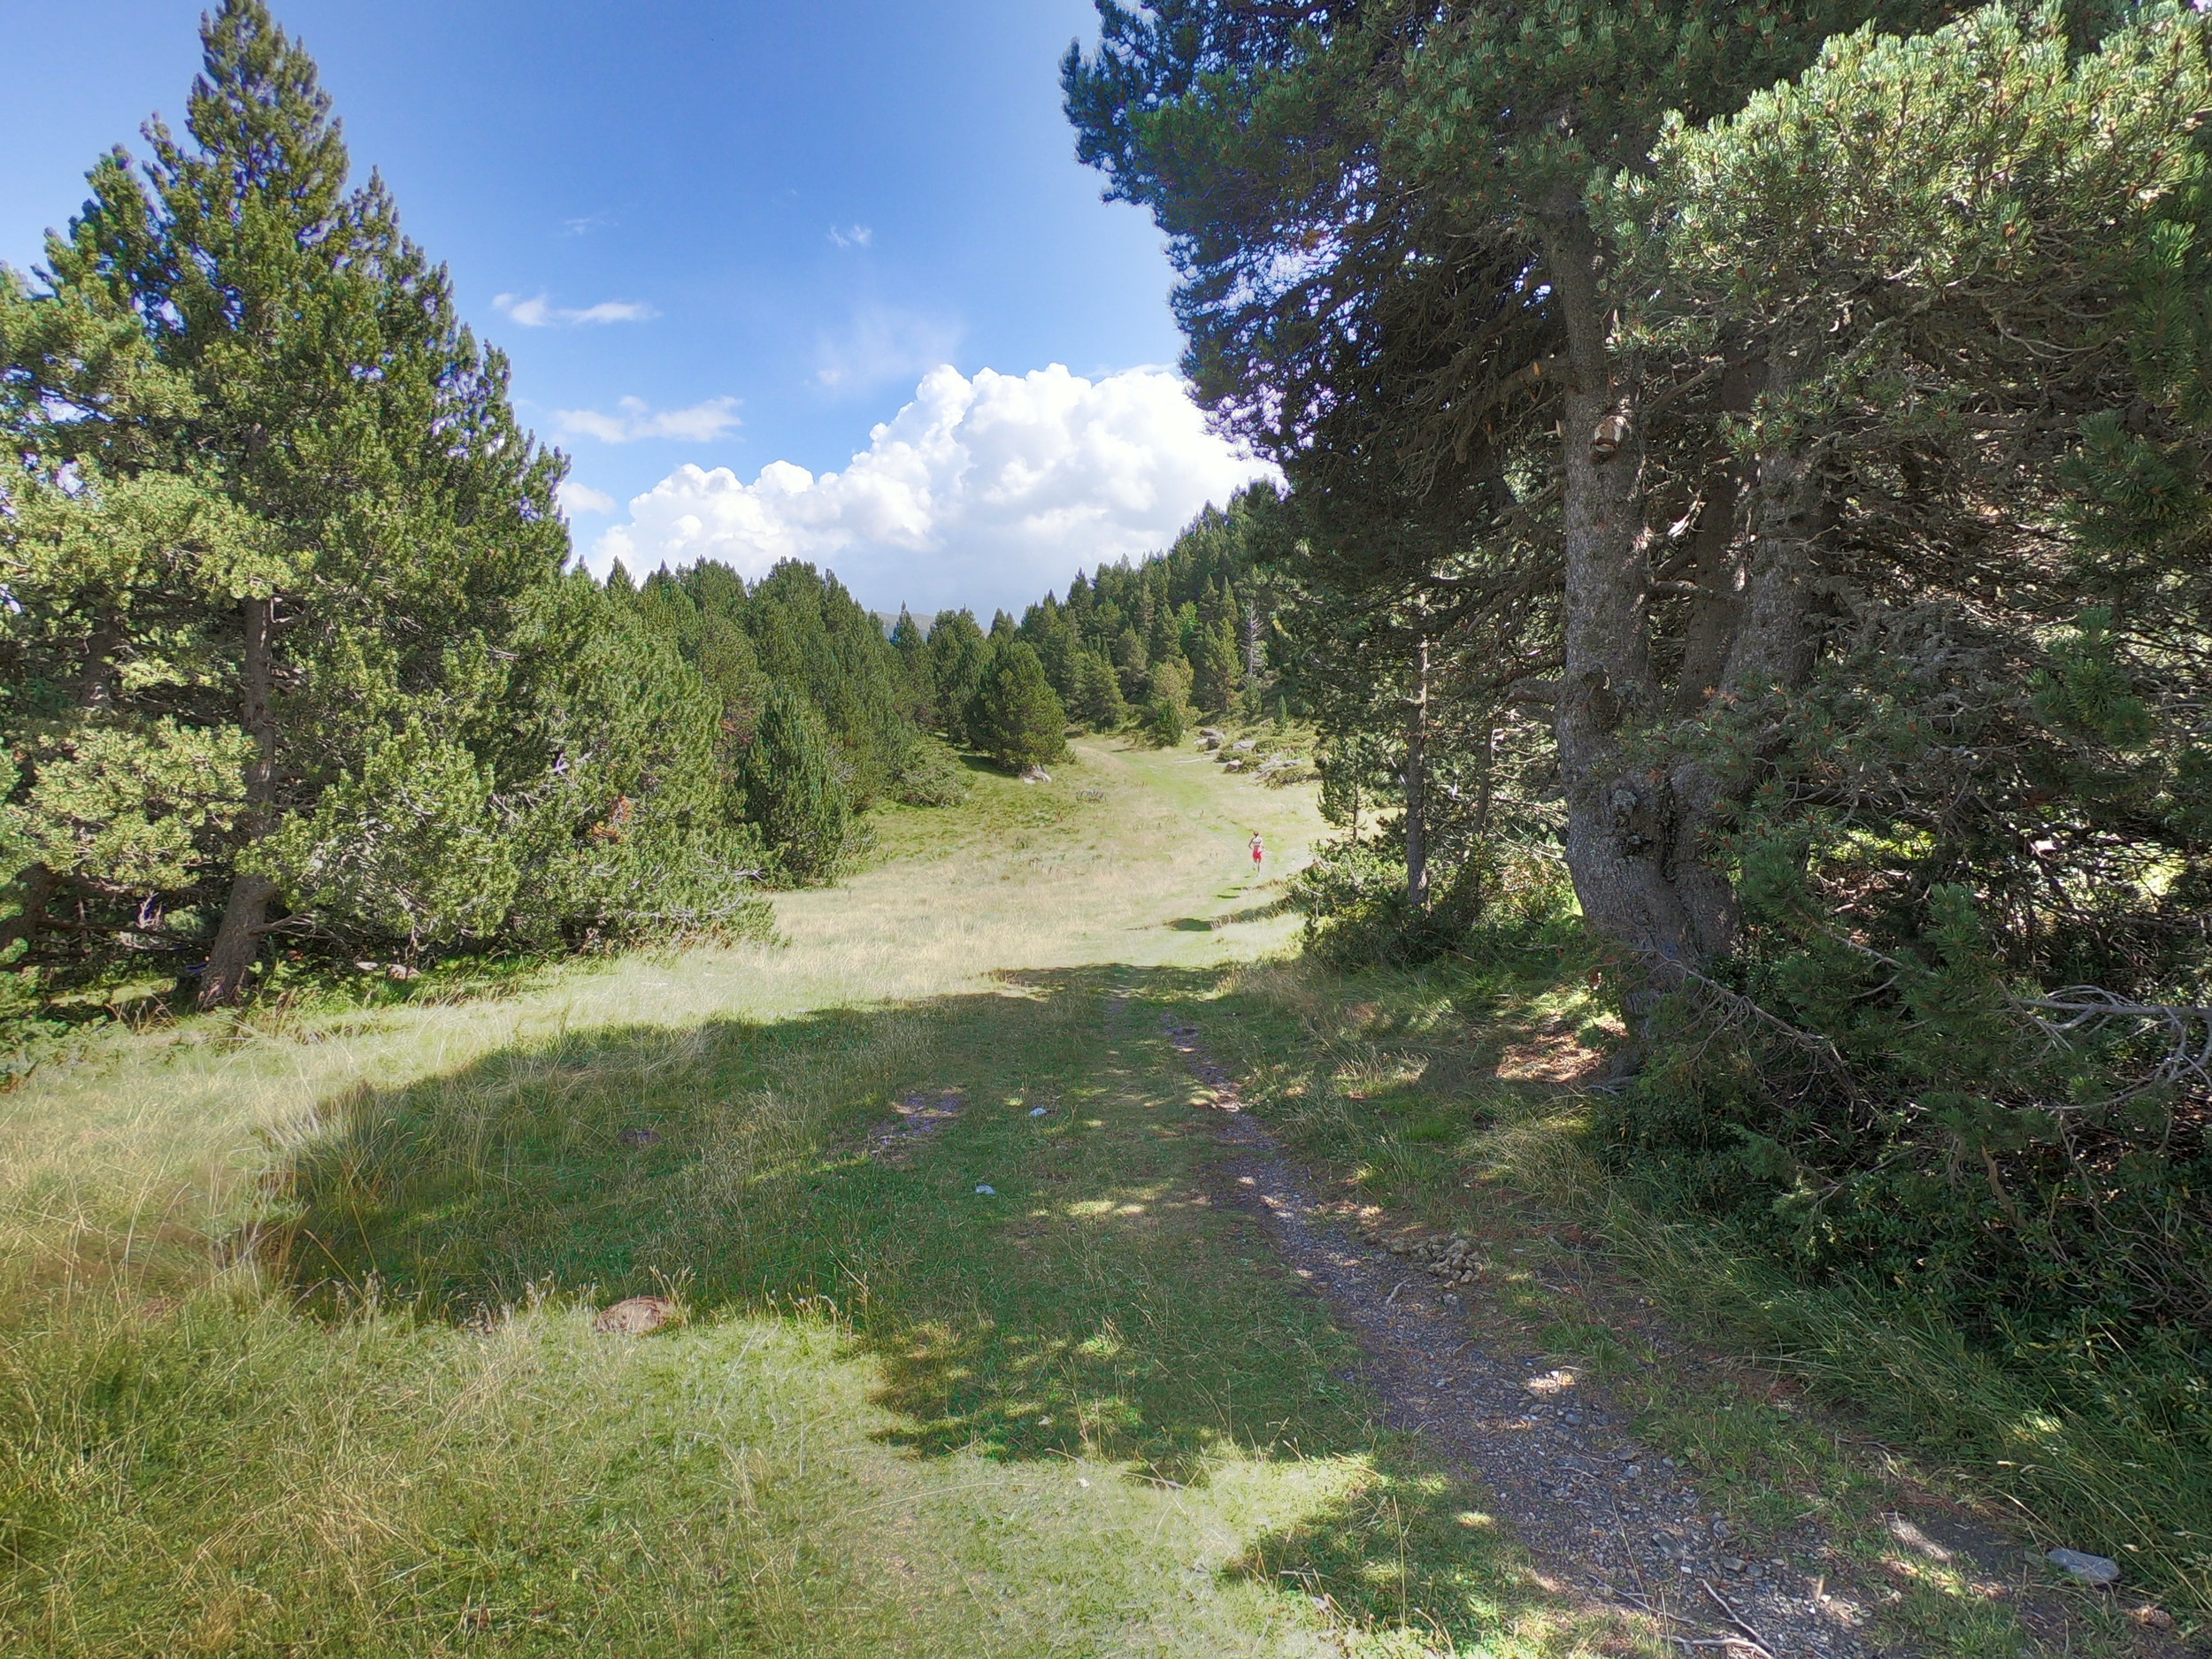 This is the wide grassy trail, which starts at about km 8. Mostly downhill until the Ribaescorxada refuge at 9.2 km into the race (feed stop 2).